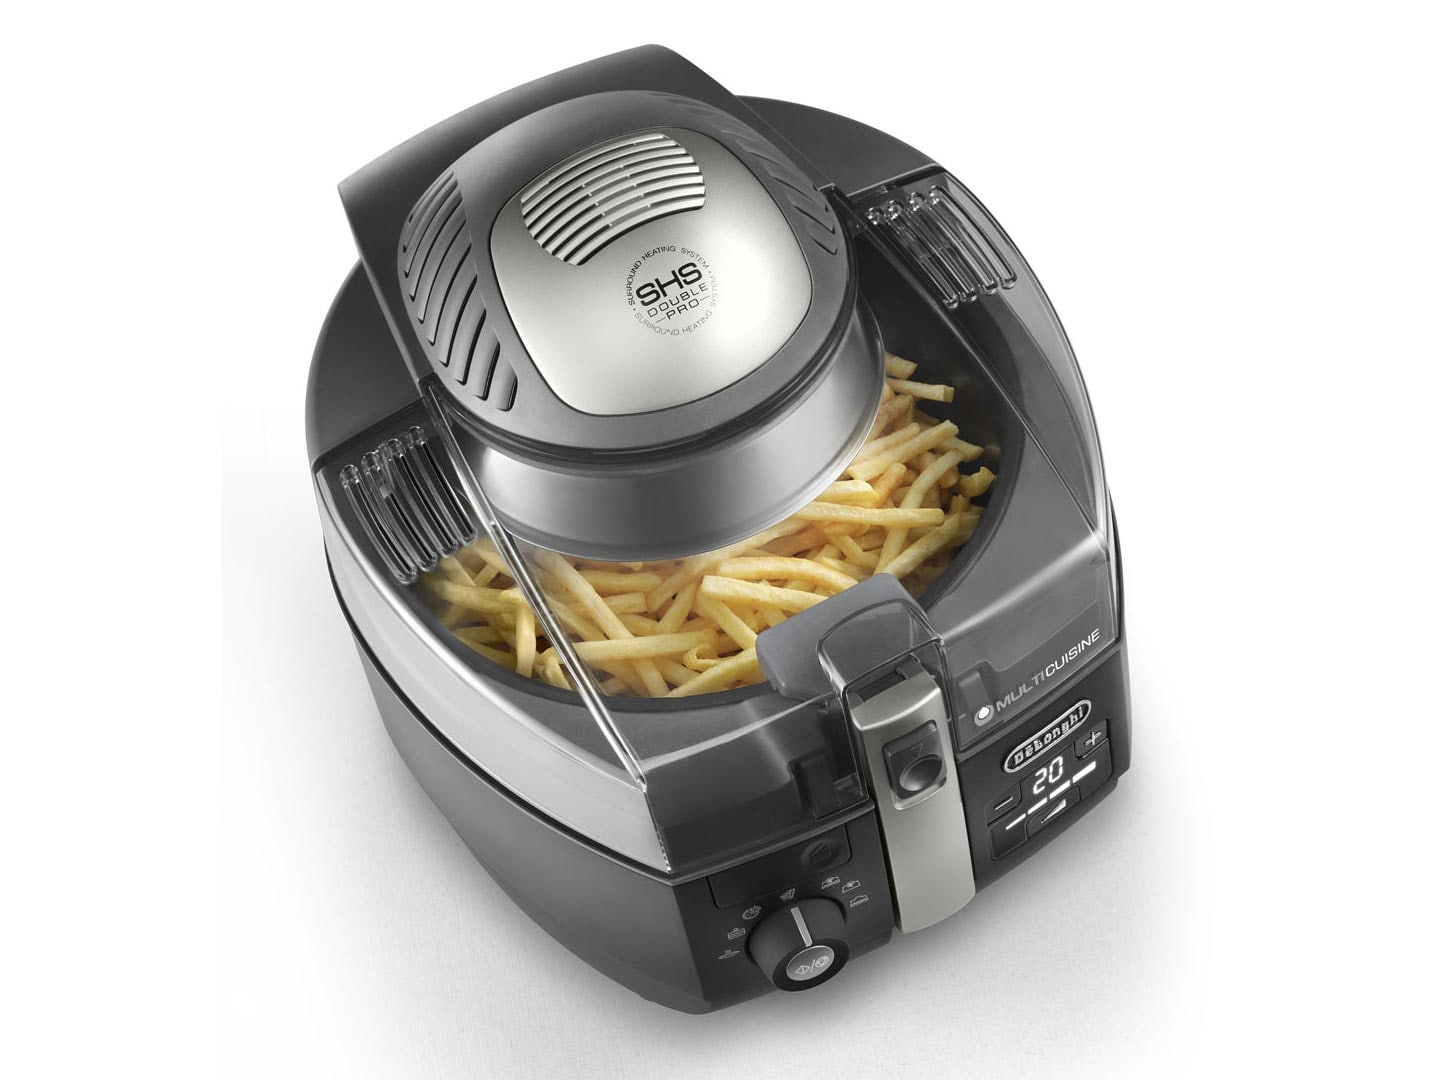 Fritadeira Air Fryer Multicuisine De'Longhi Digital 5,2L - FH1394/1.BK-127V